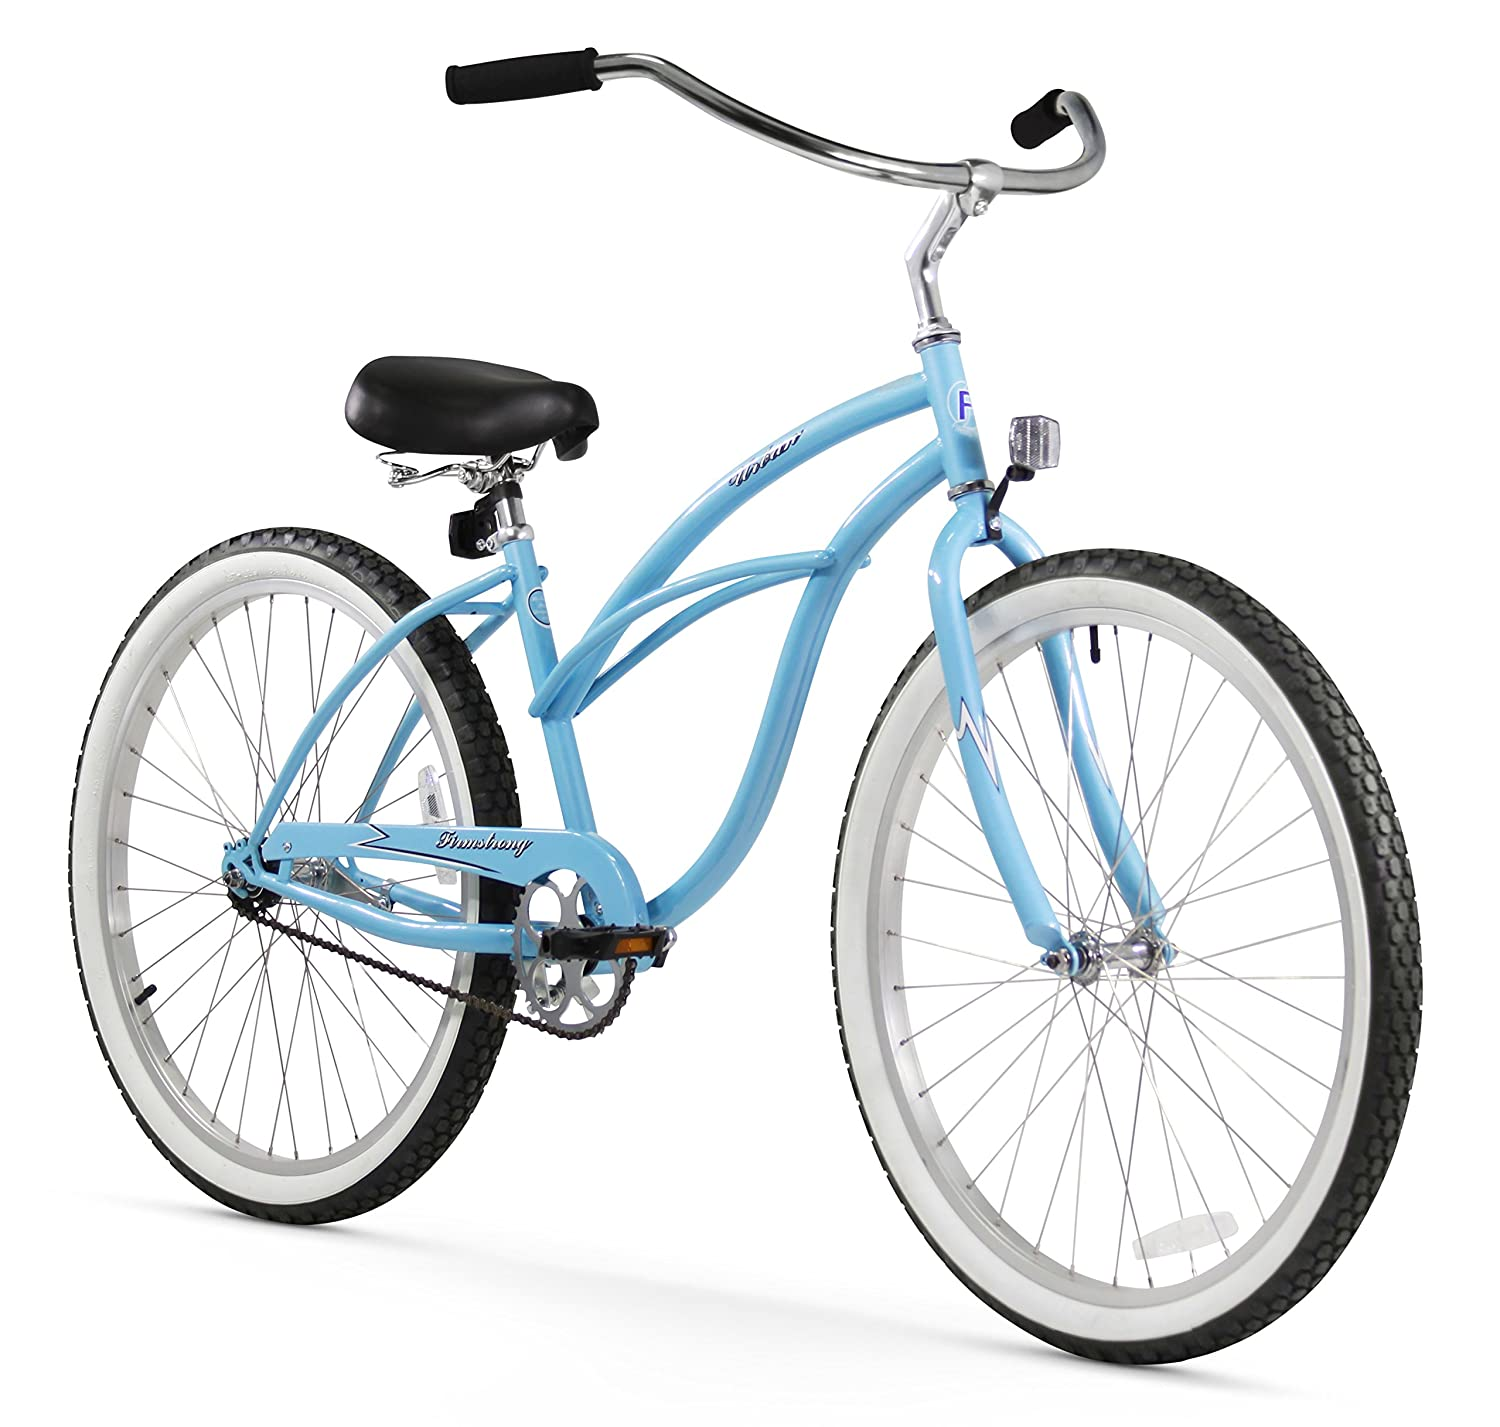 The Best Beach Cruiser Bikes for Women 1